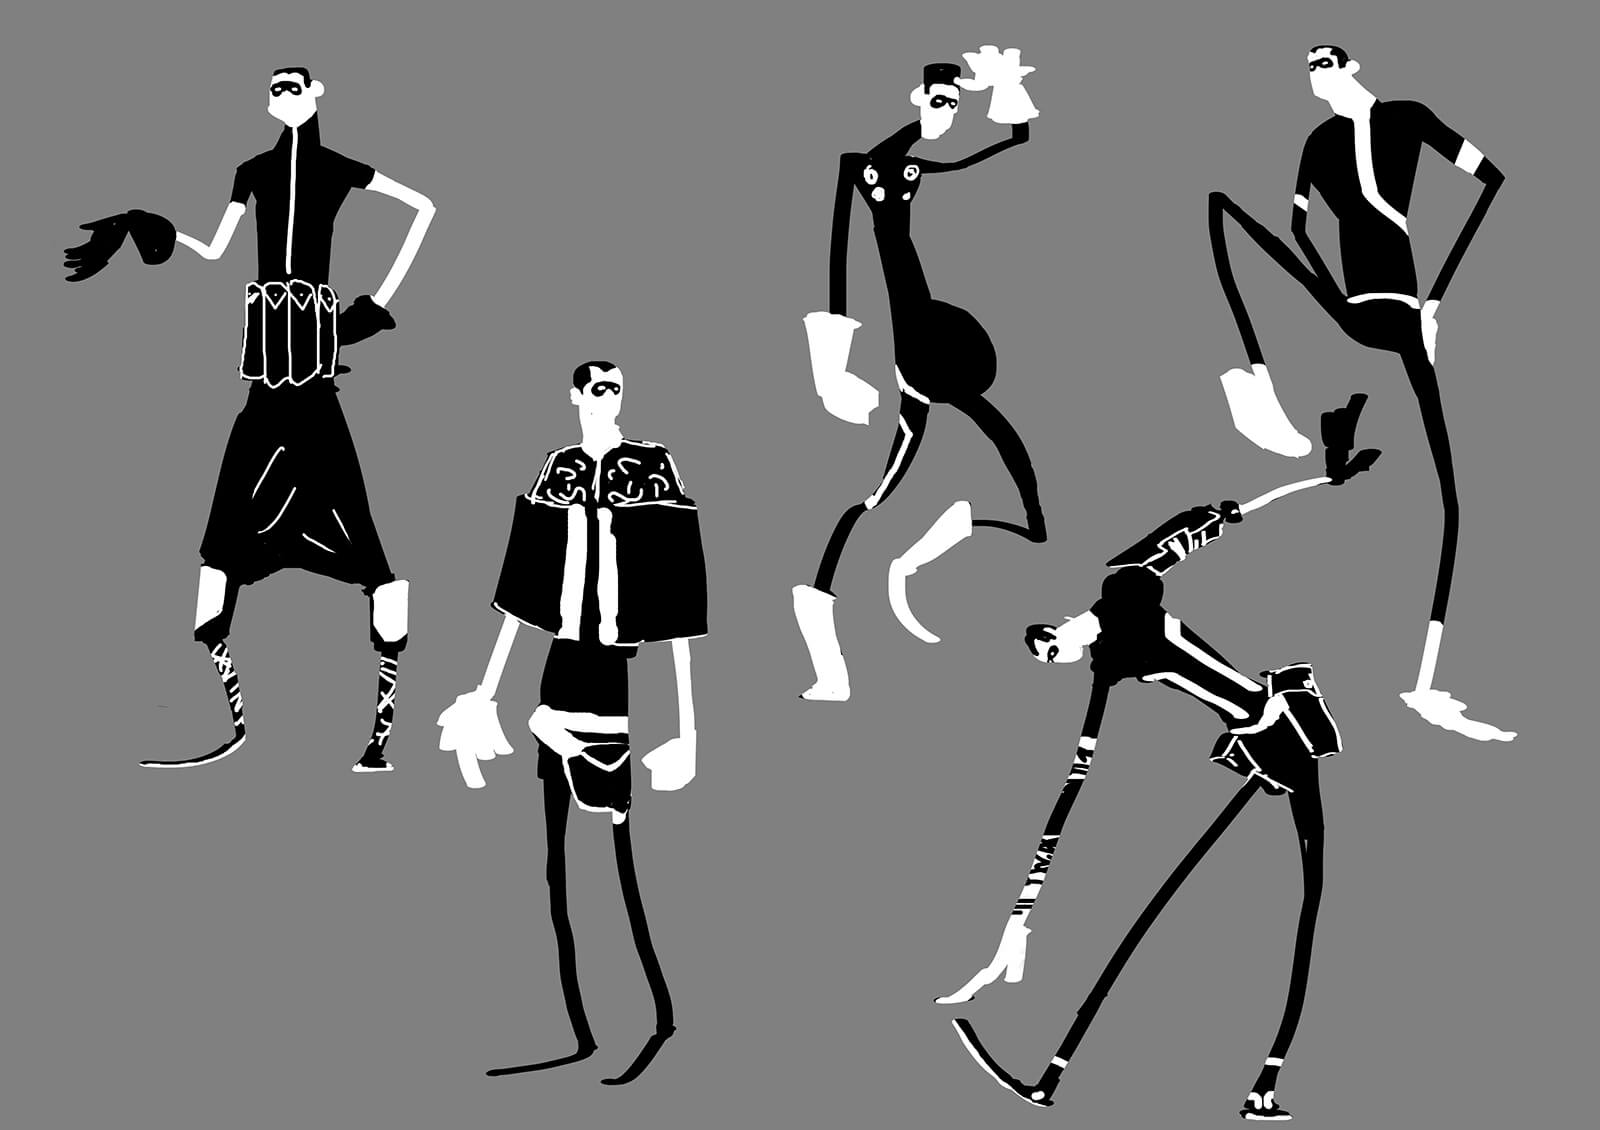 Black-and-white concept sketches or a tall, thin man in various outfits and poses